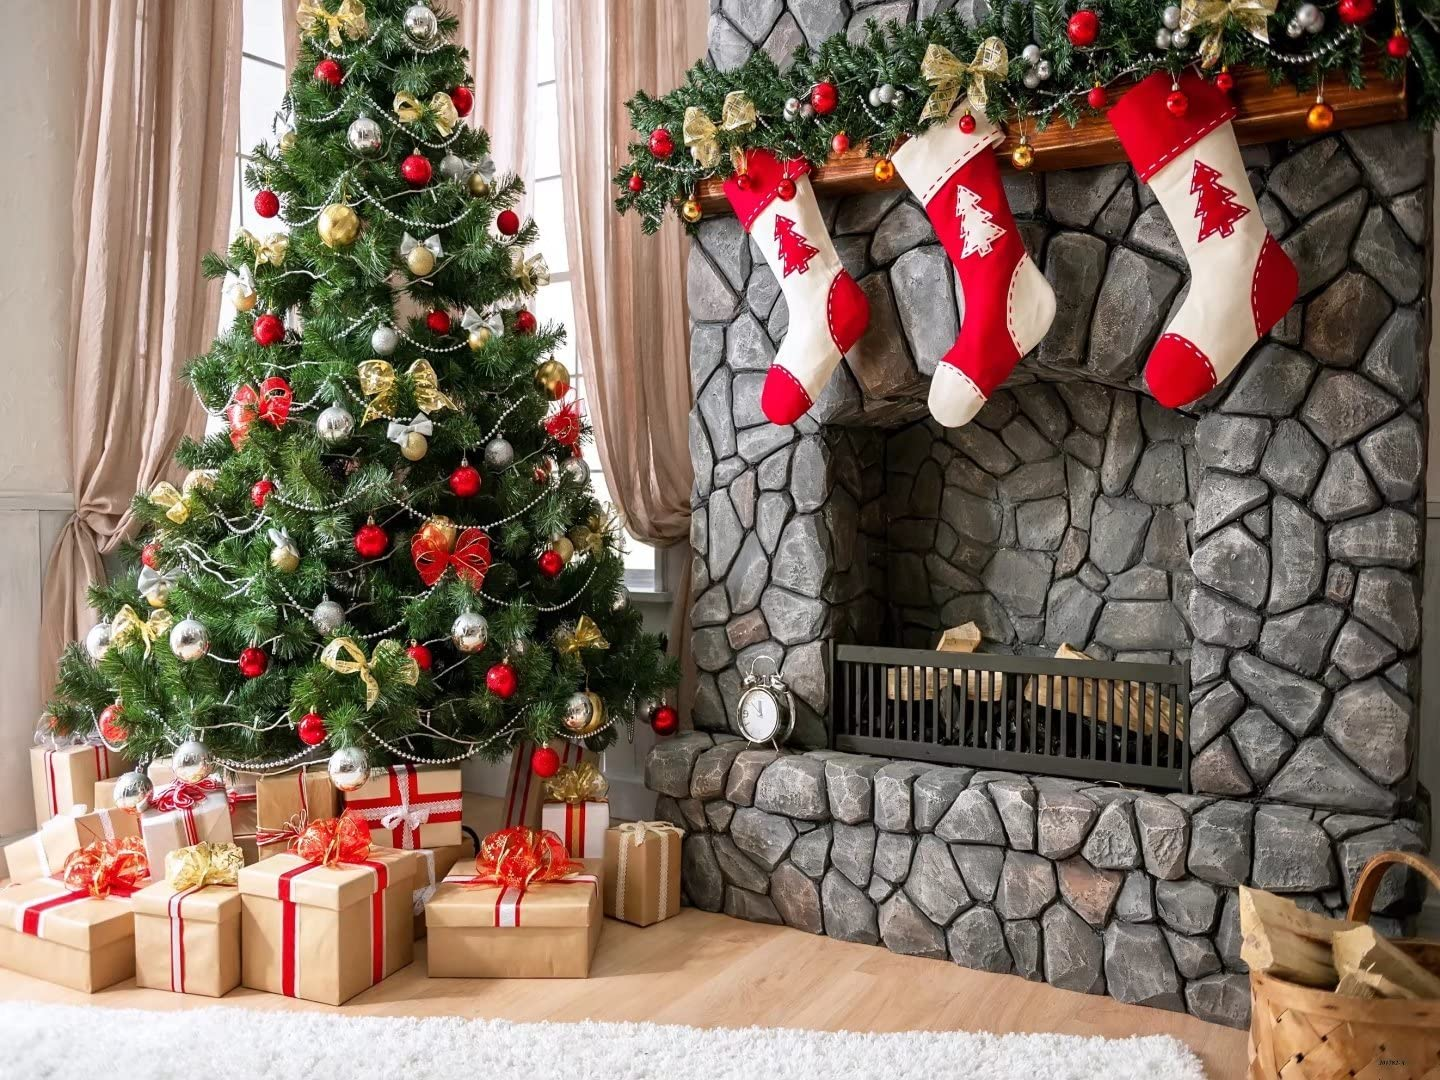 Pon The Christmas Tree and Three Little Socks Fireplace Photo Backgrounds no Wrinkle Photography Backdrops 7x5 ft 2.2x1.5m